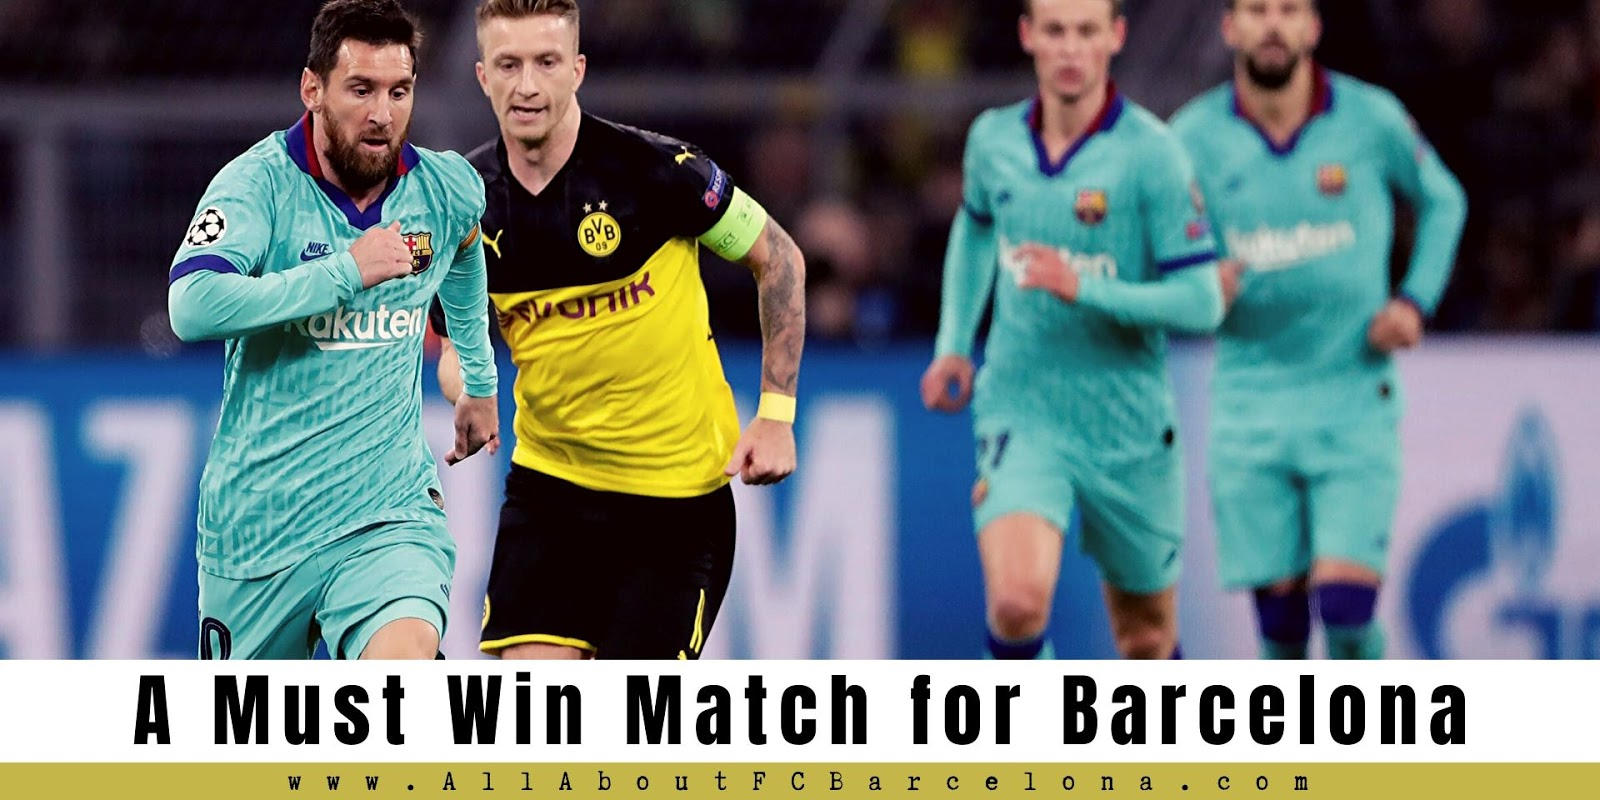 All Eyes are on Messi as Barcelona faces Dortmund in a Must-win match